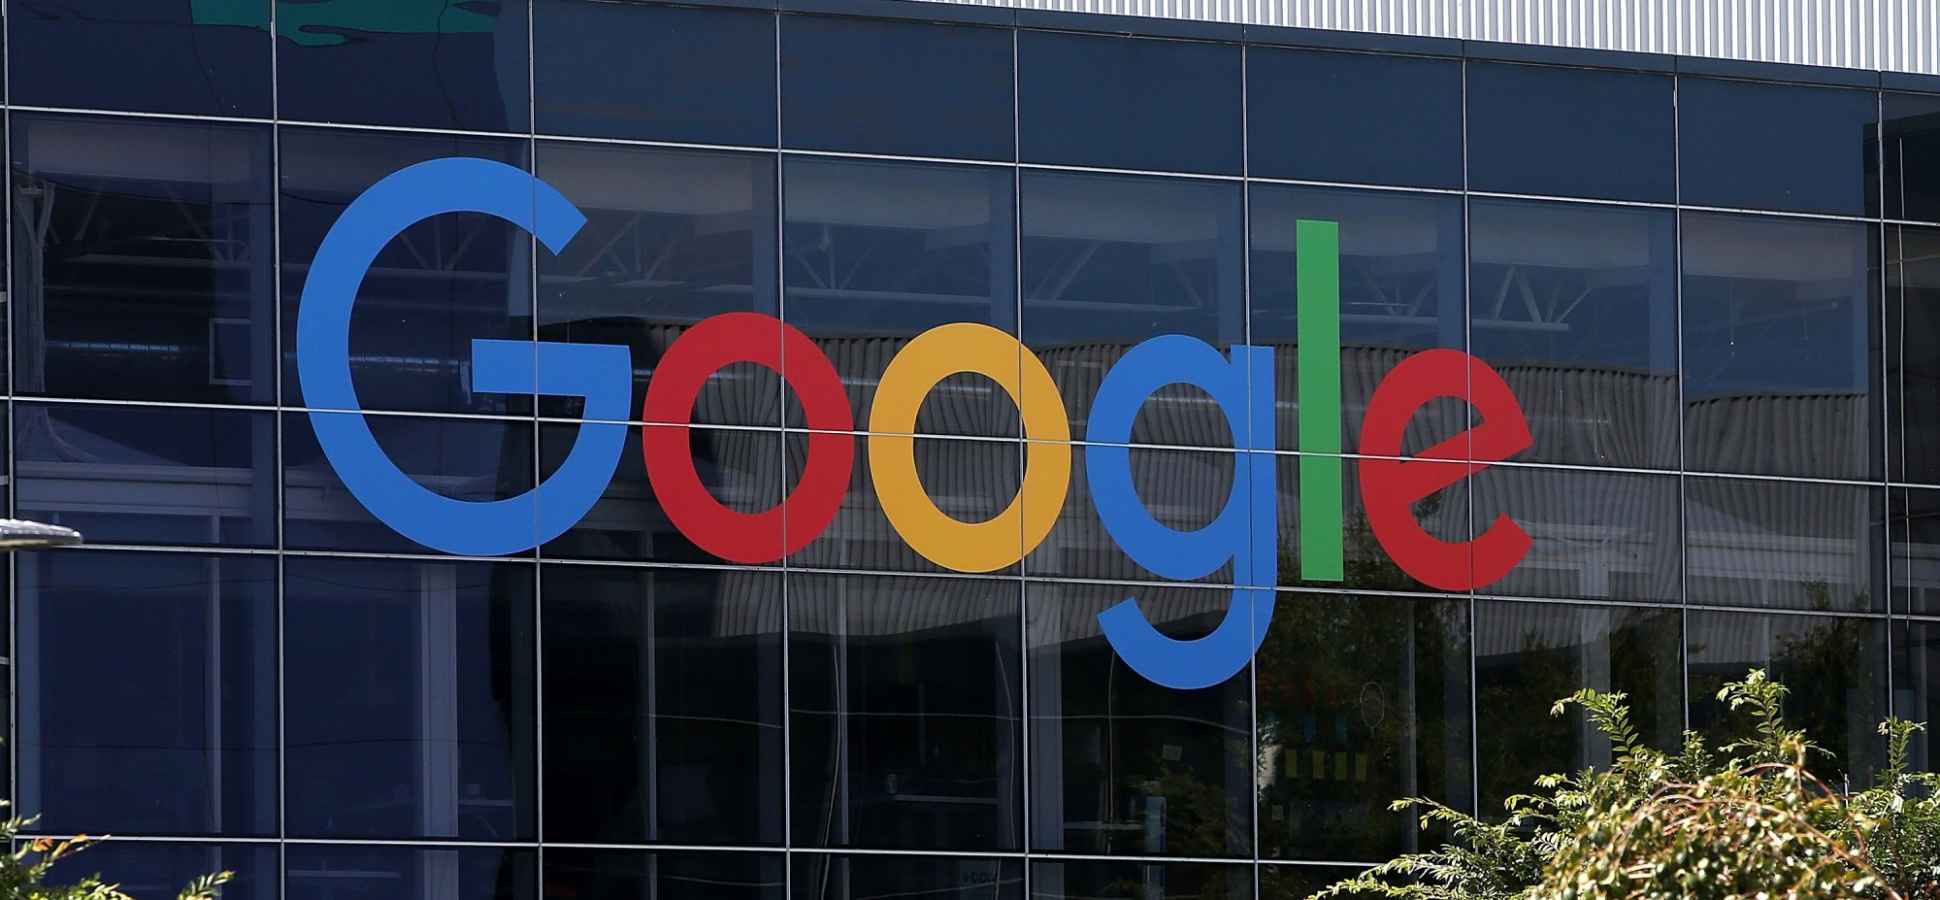 Google Used This Simple Approach to Become the Leading Search Engine. Here's How